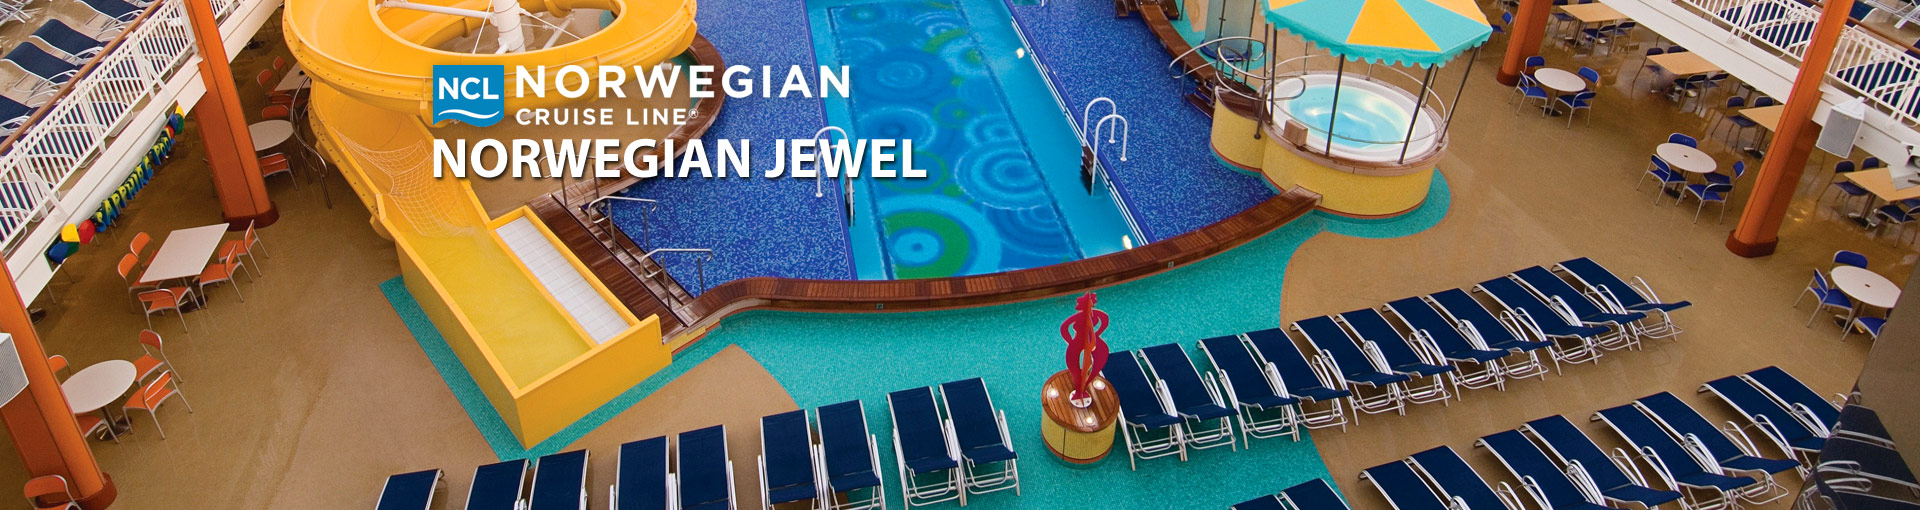 Norwegian Jewel Cruise Ship 2019 And 2020 Norwegian Jewel Destinations Deals The Cruise Web